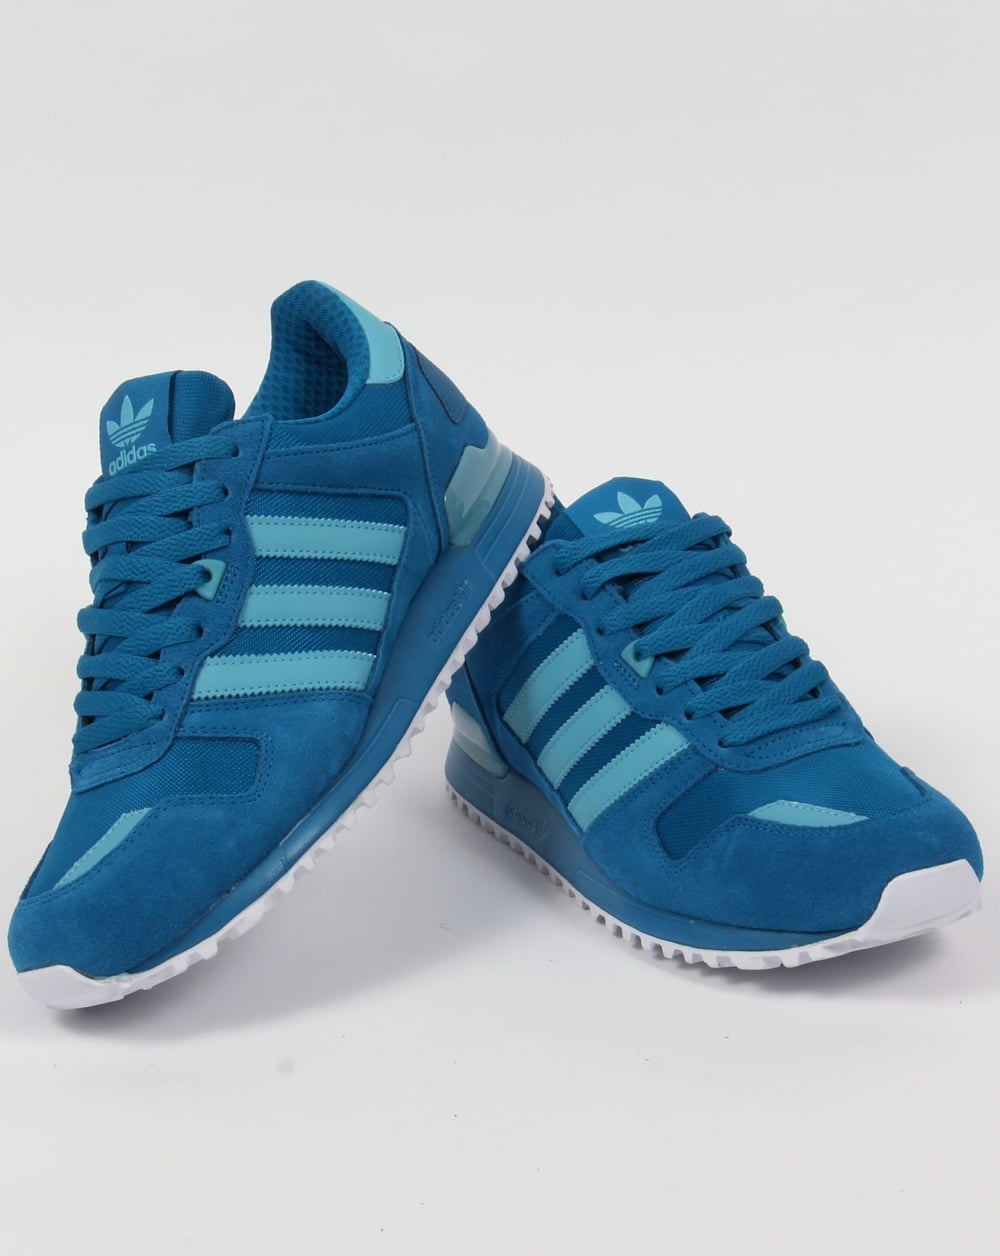 adidas zx 700 trainers utility blue mens originals runner. Black Bedroom Furniture Sets. Home Design Ideas